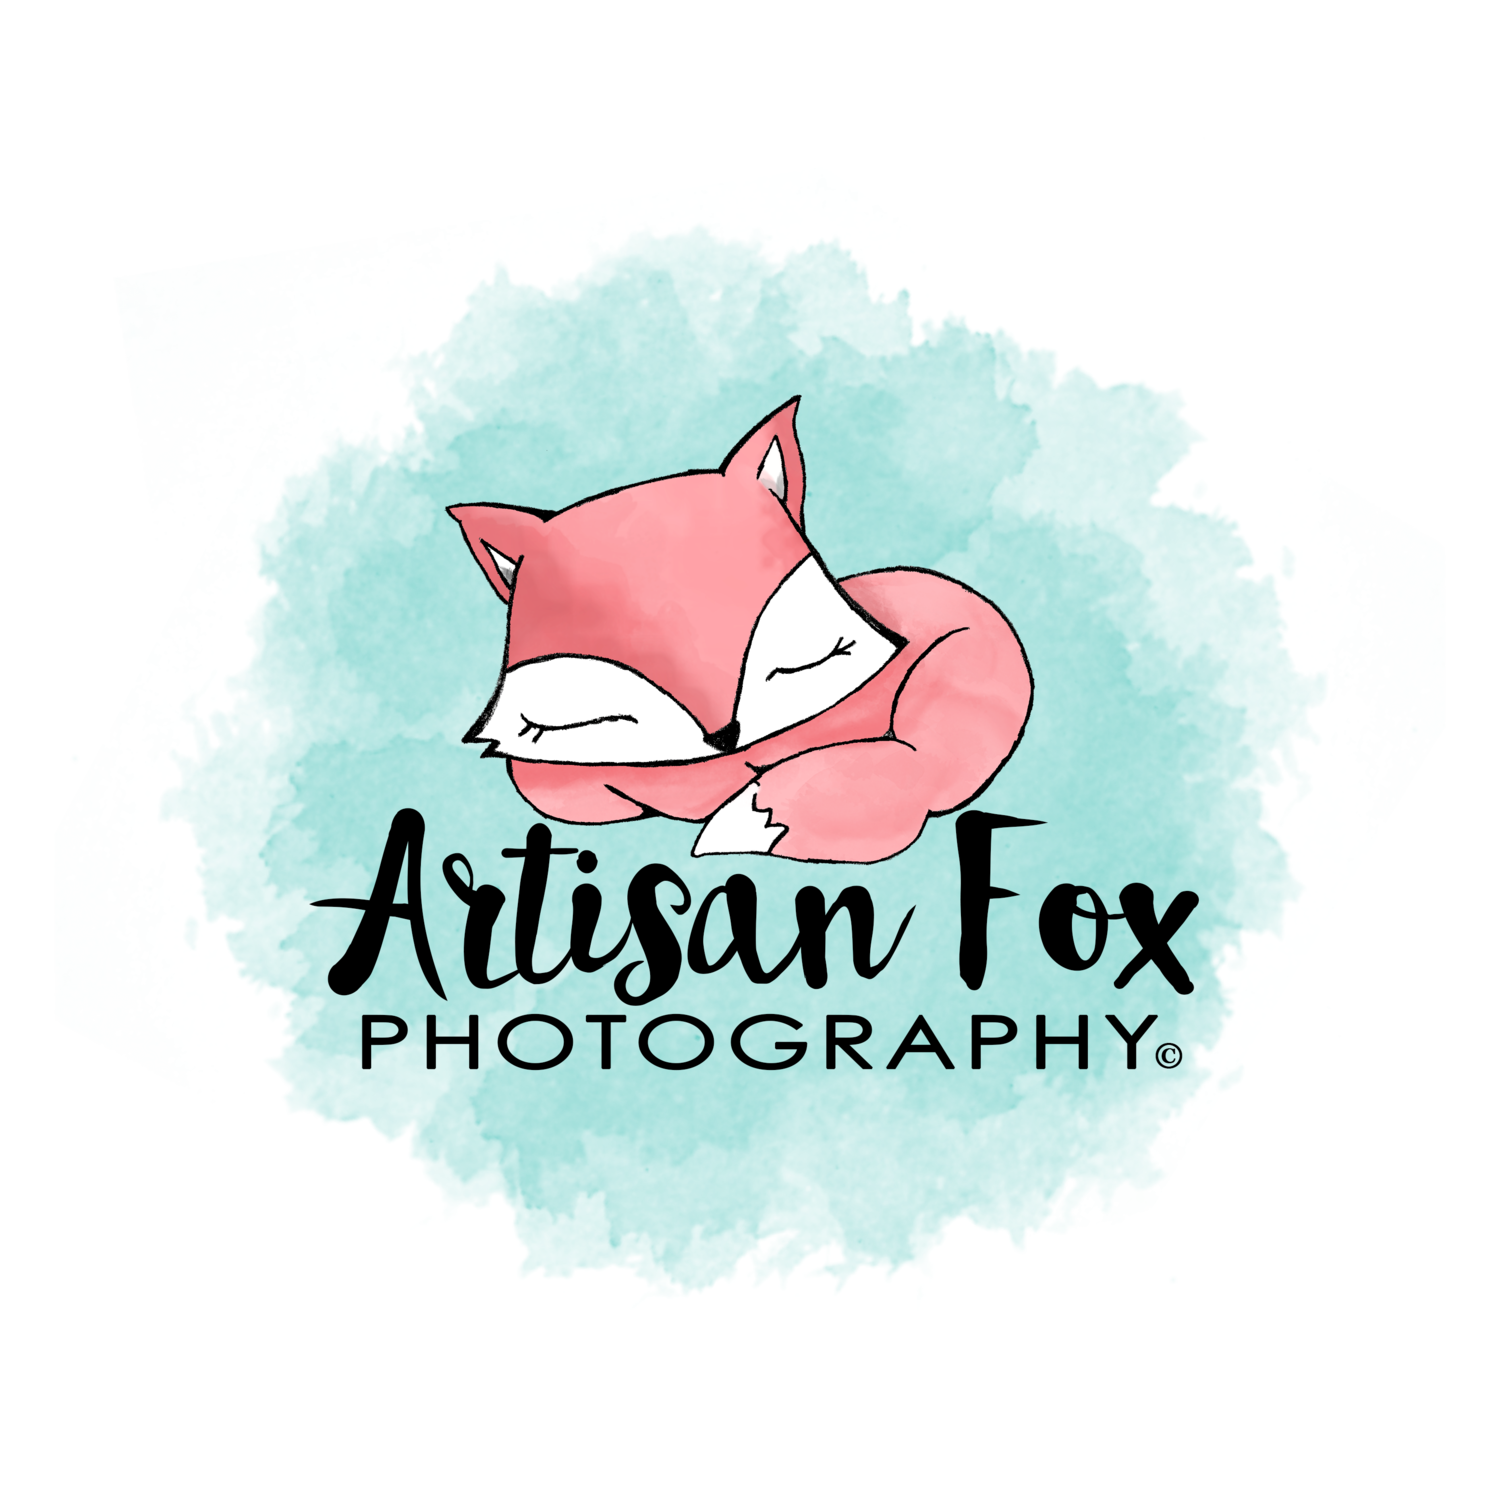 Artisan Fox Photography